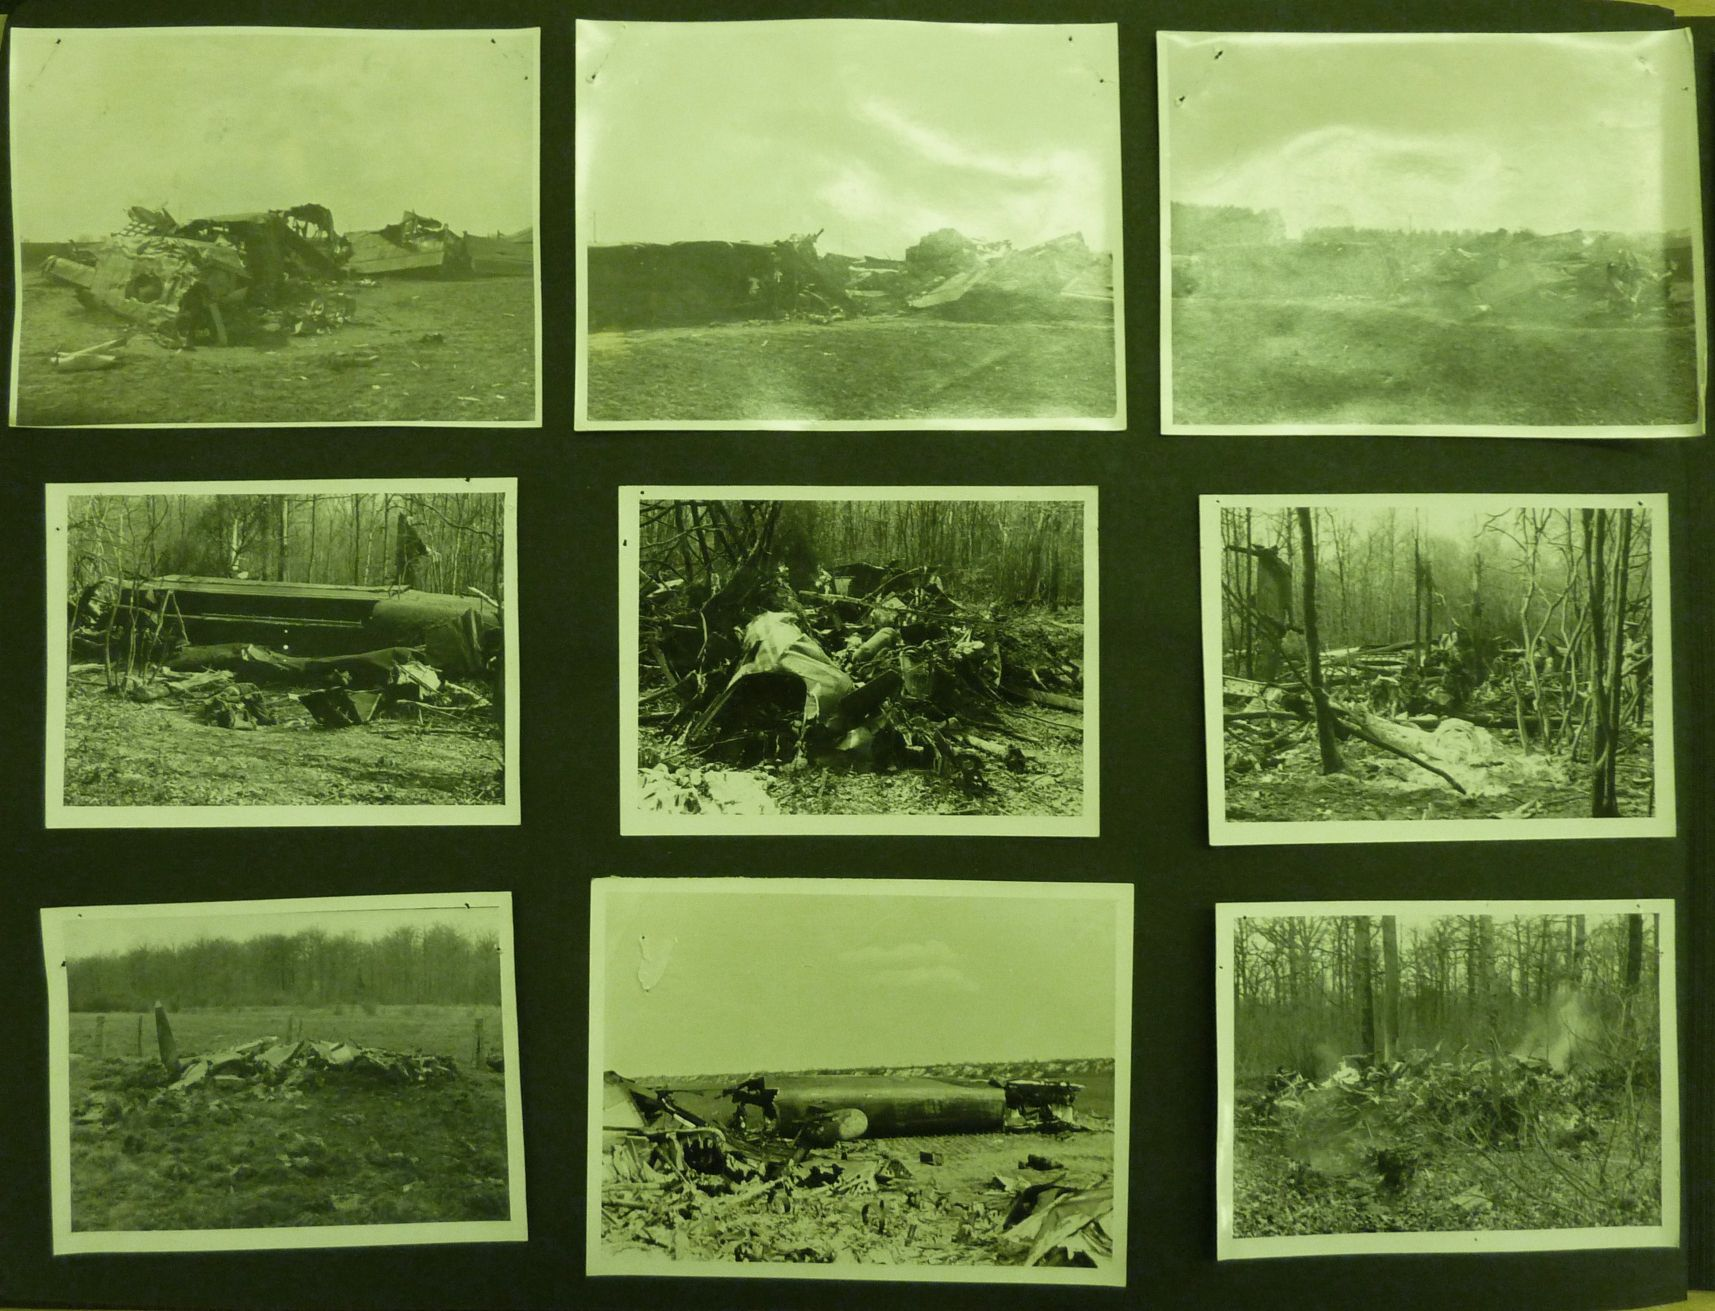 IMAGE 6: Montage of Photos from S/L Eric Rideal's  PHOTO Alblum now residing in the RAF Museum in London